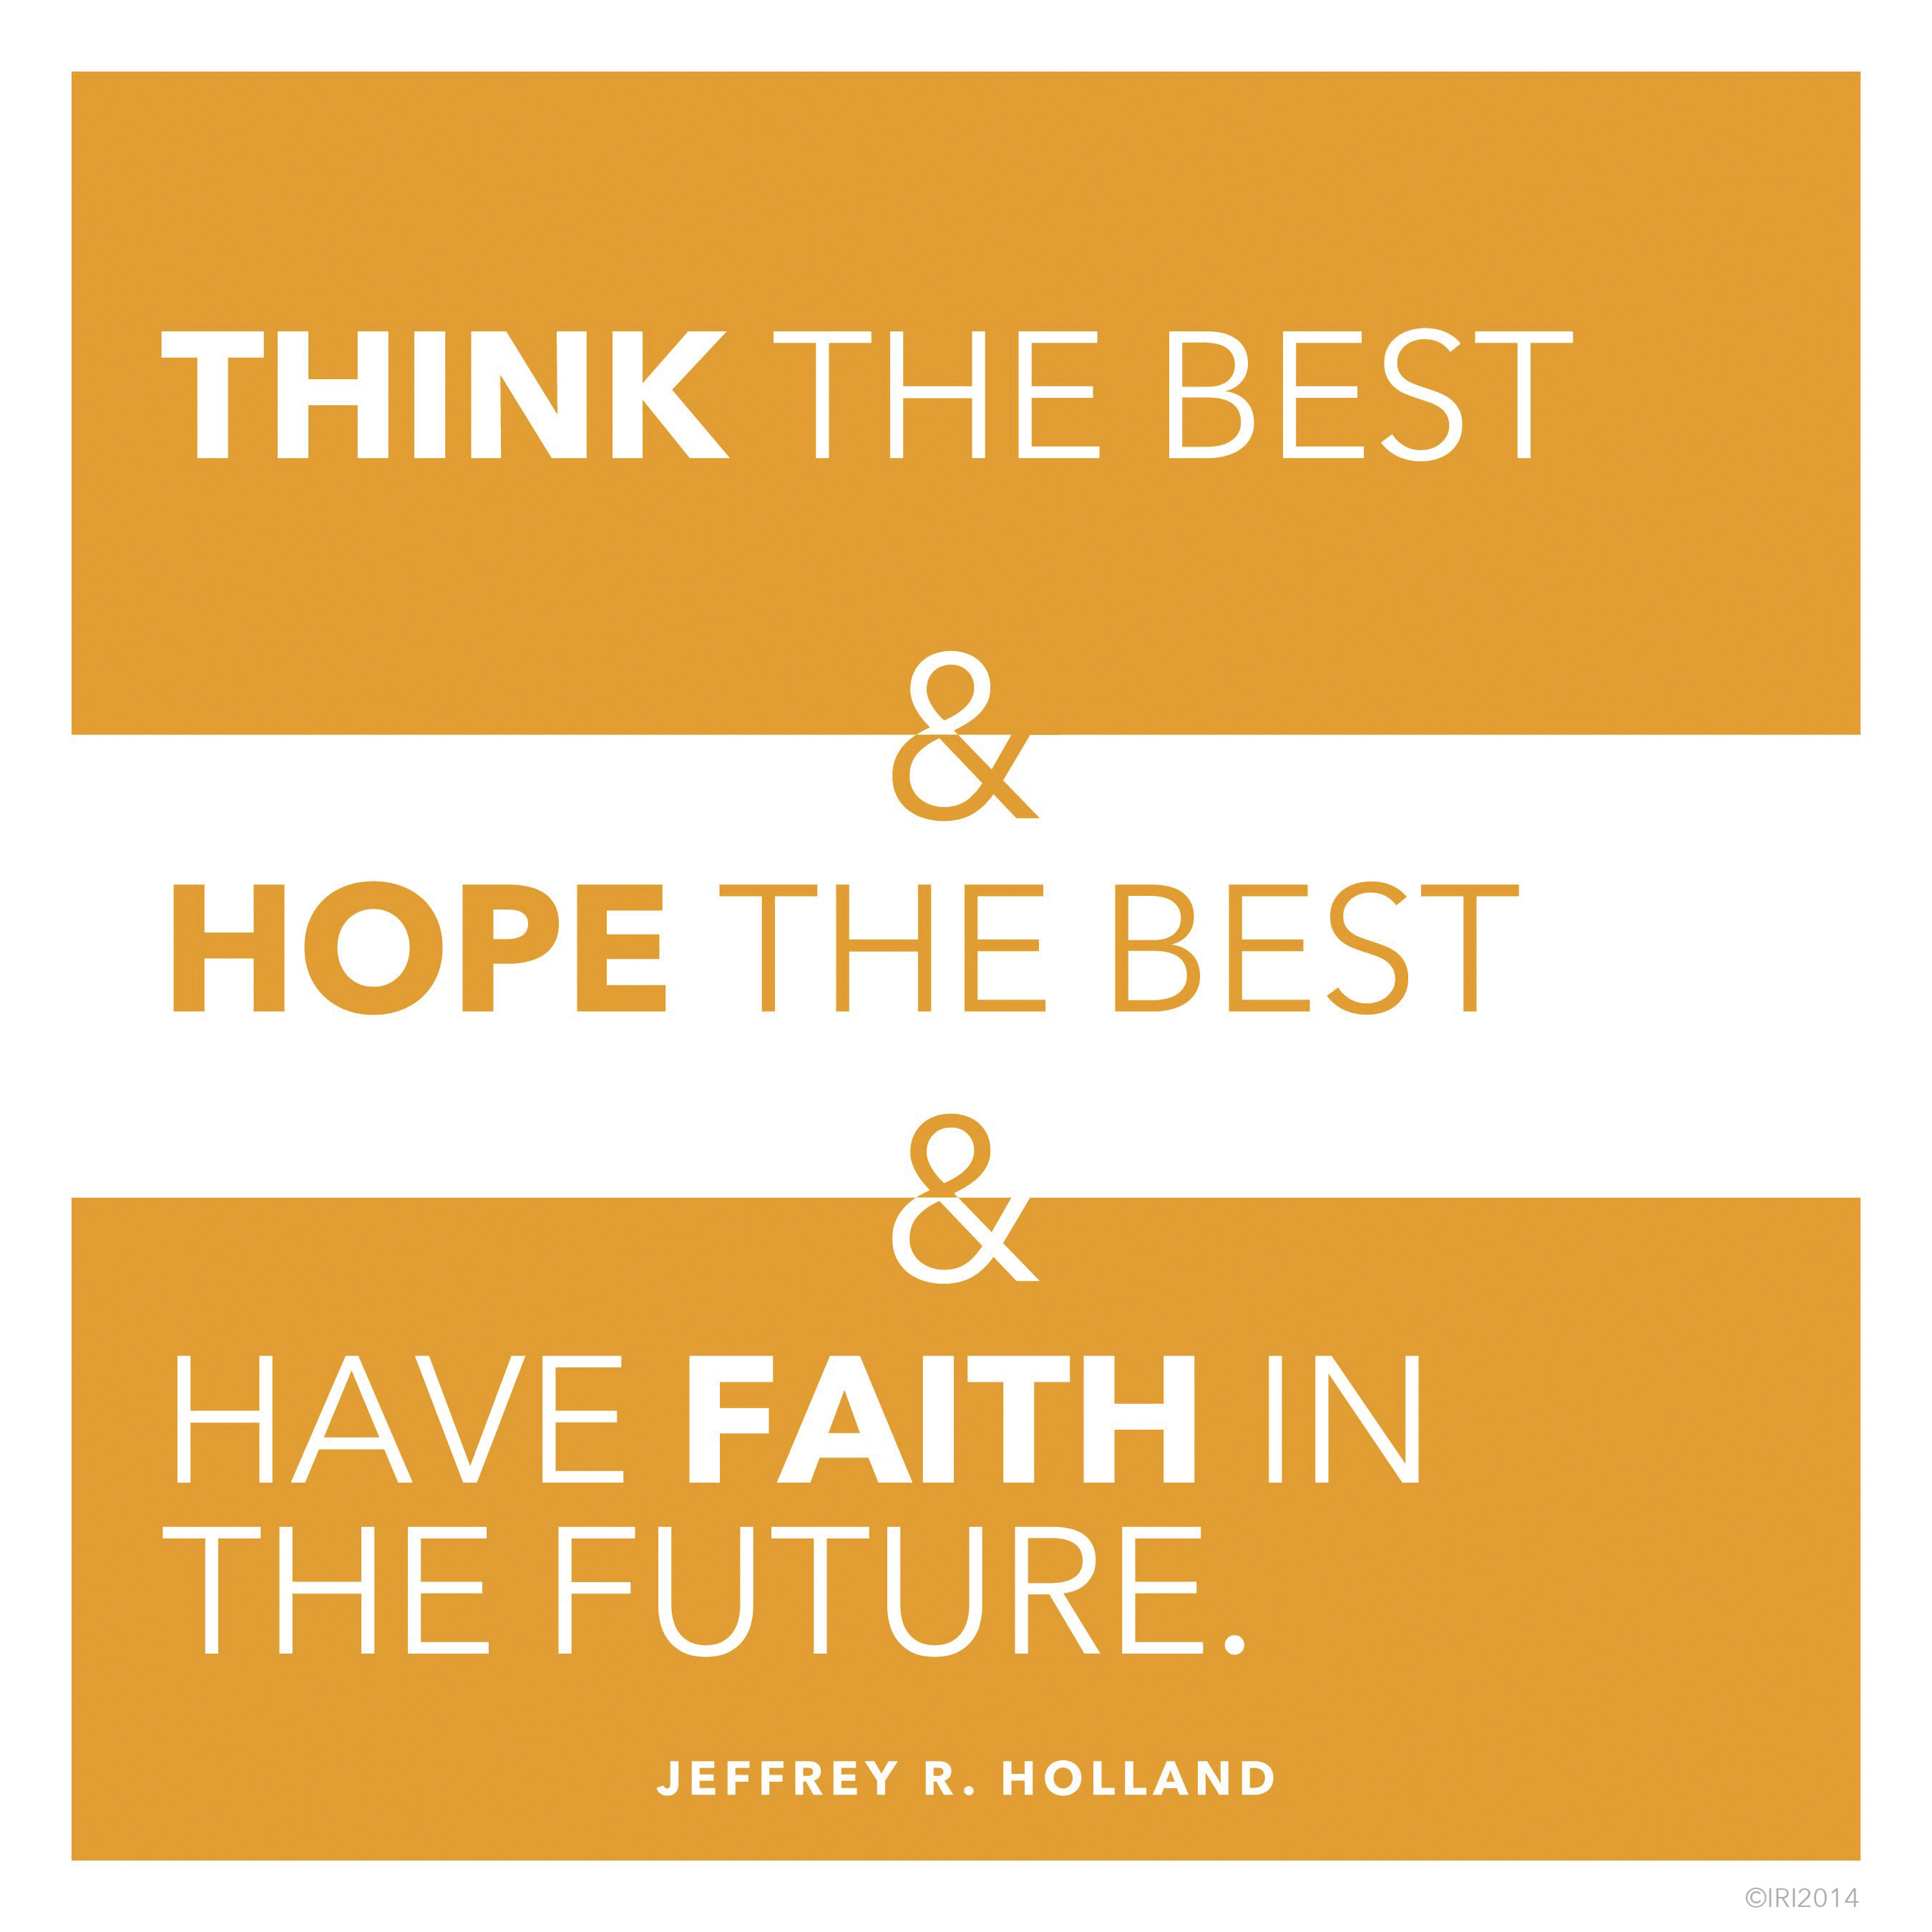 """""""Think the best and hope the best and have faith in the future.""""—Elder Jeffrey R. Holland, """"The Confidence of Worthiness"""""""